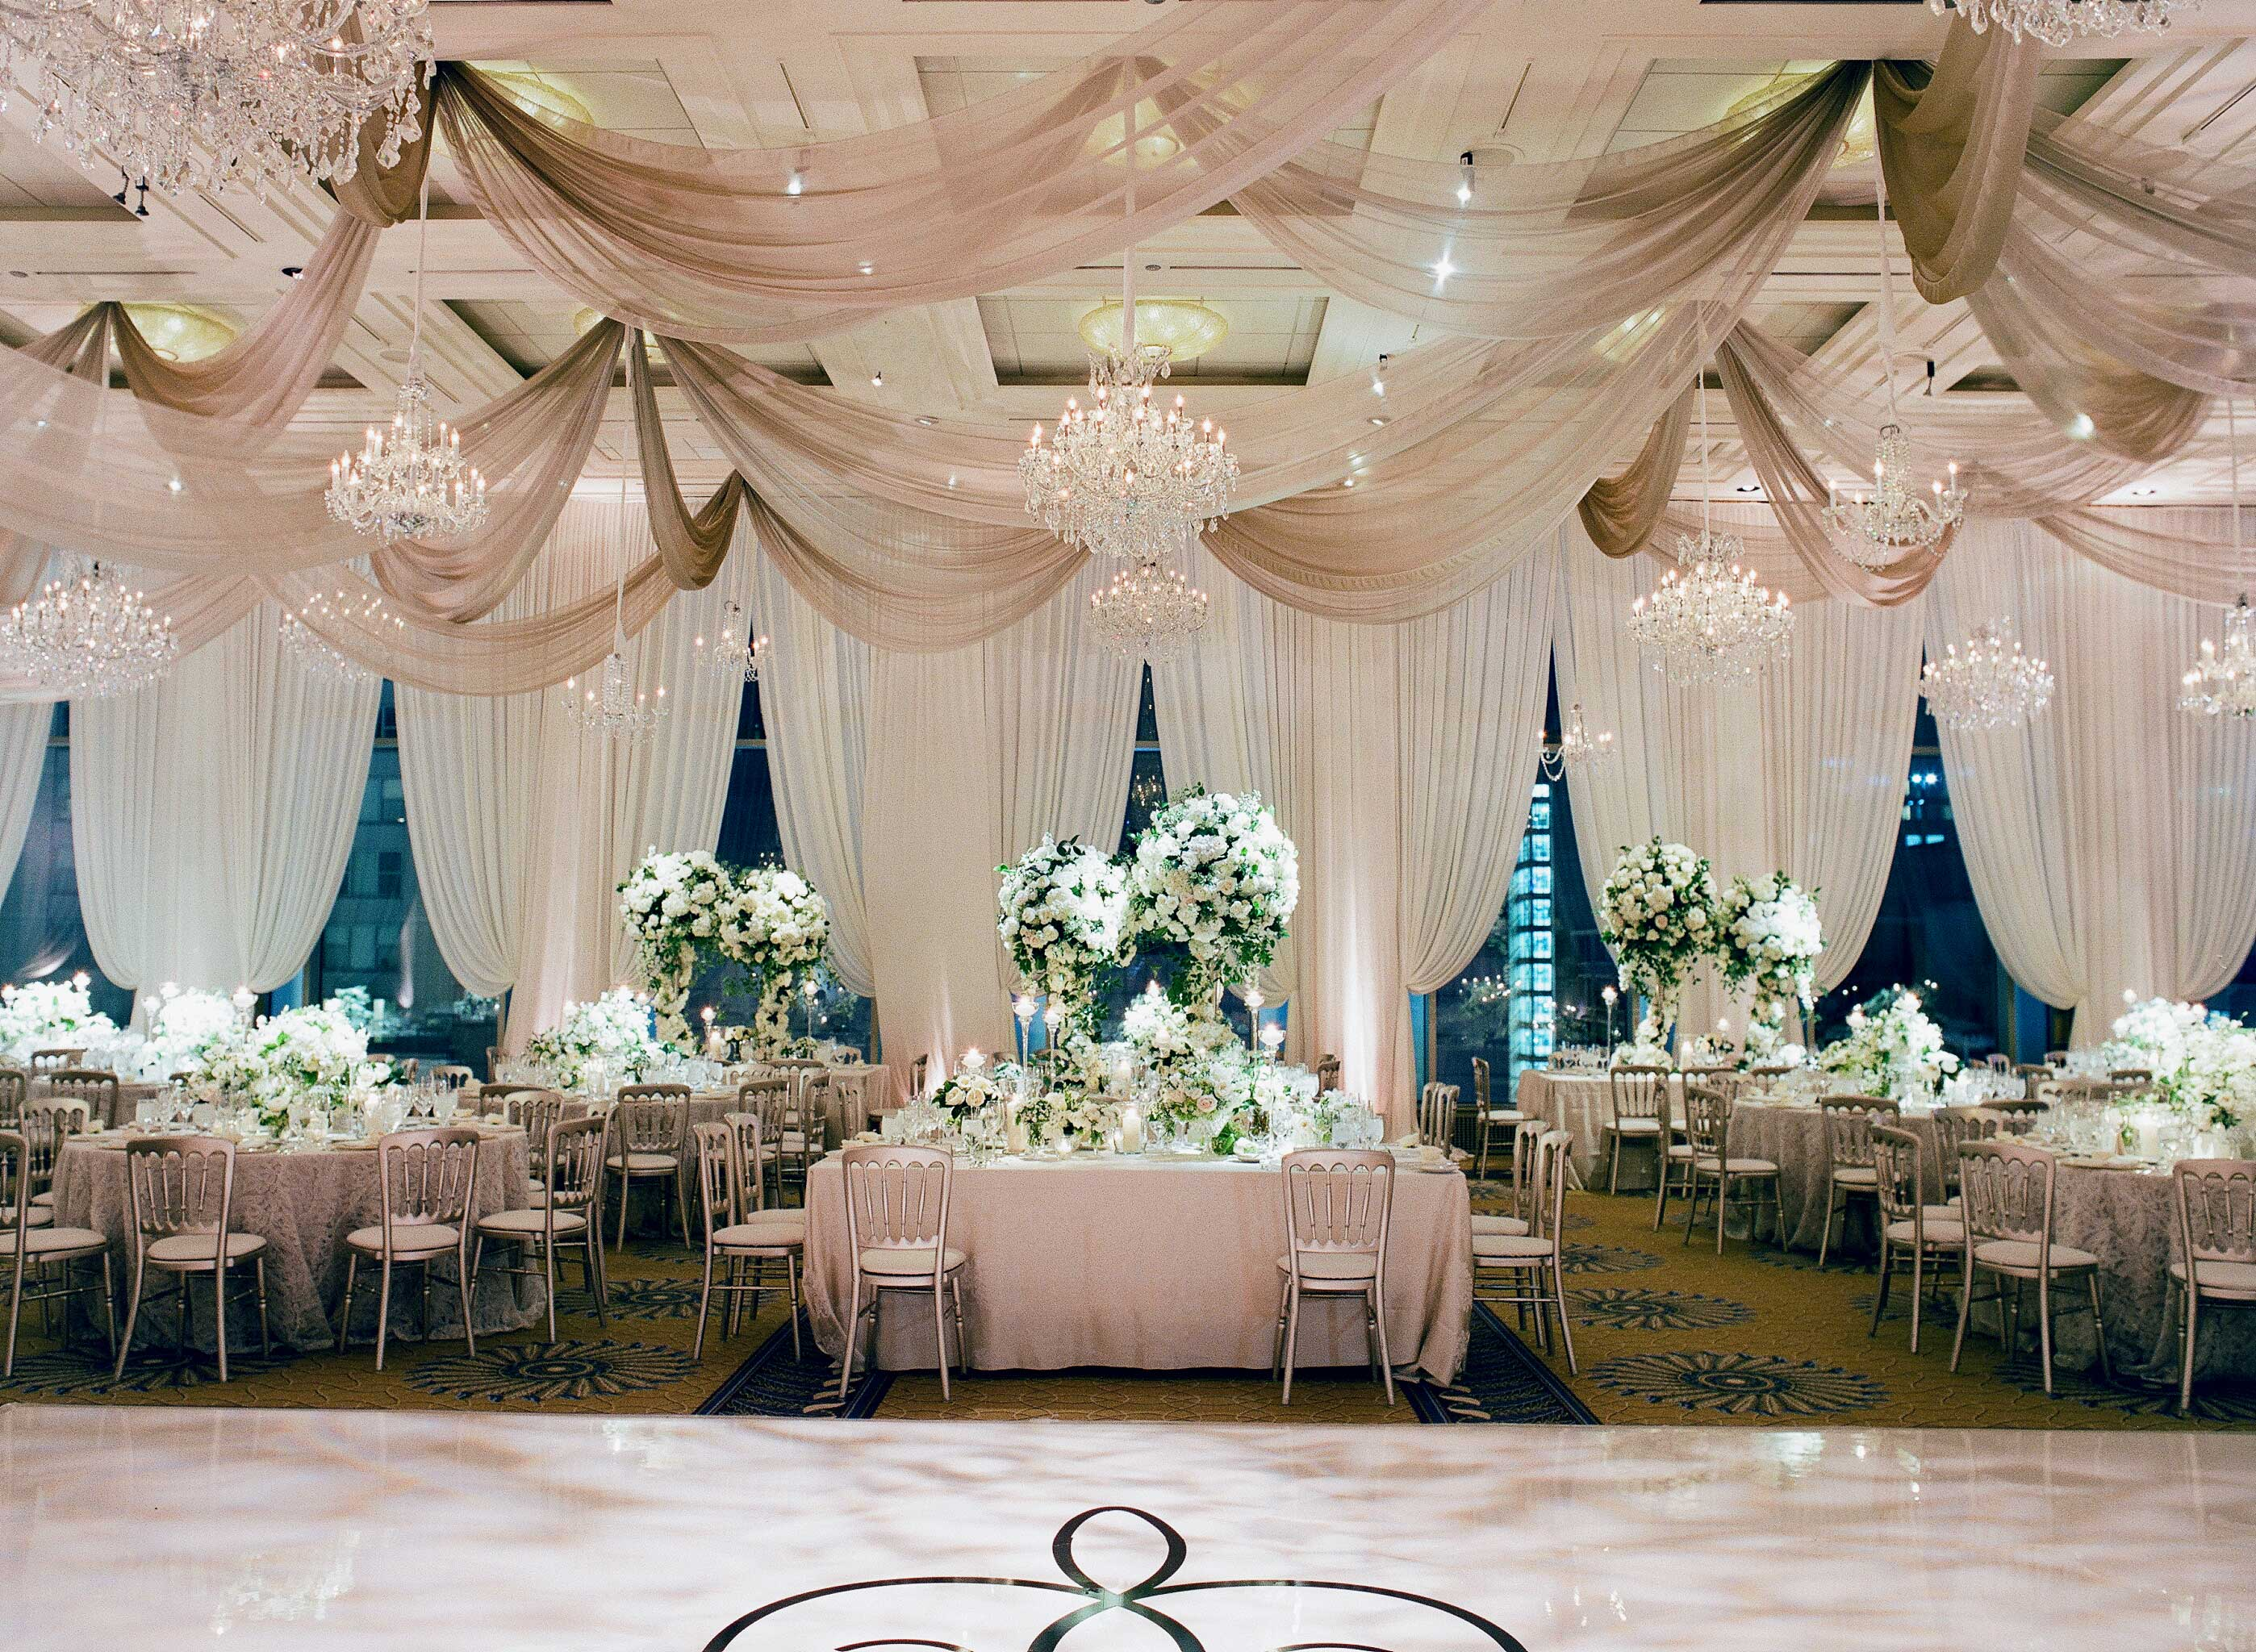 luxurious ballroom wedding reception with pretty drapery neutral color palette